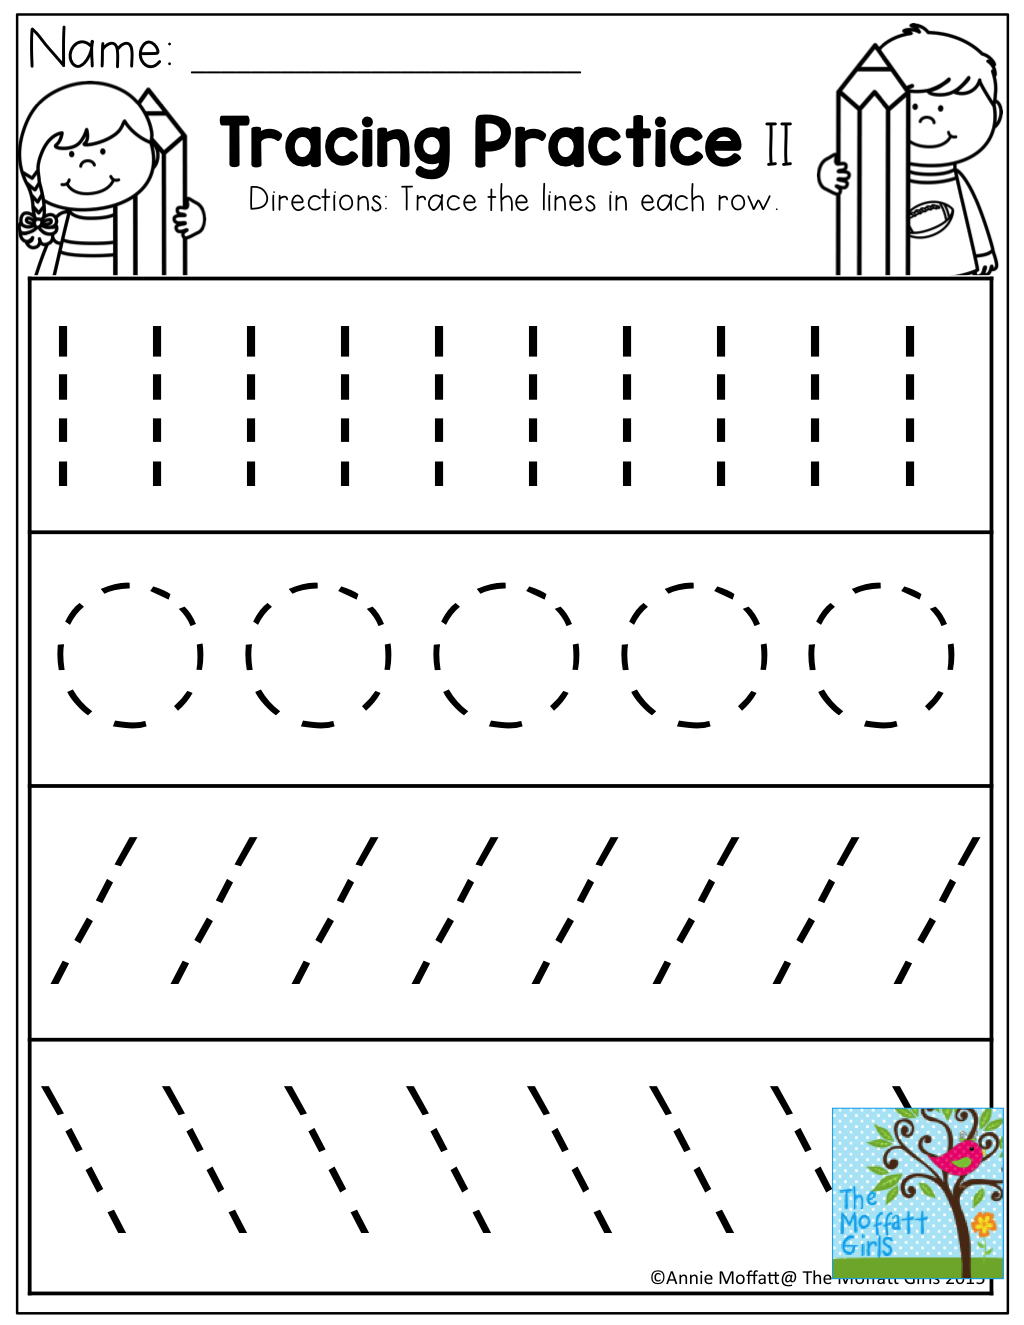 Worksheets Pre-k Worksheets Printables tracing practice tons of printable for pre k kindergarten 1st grade